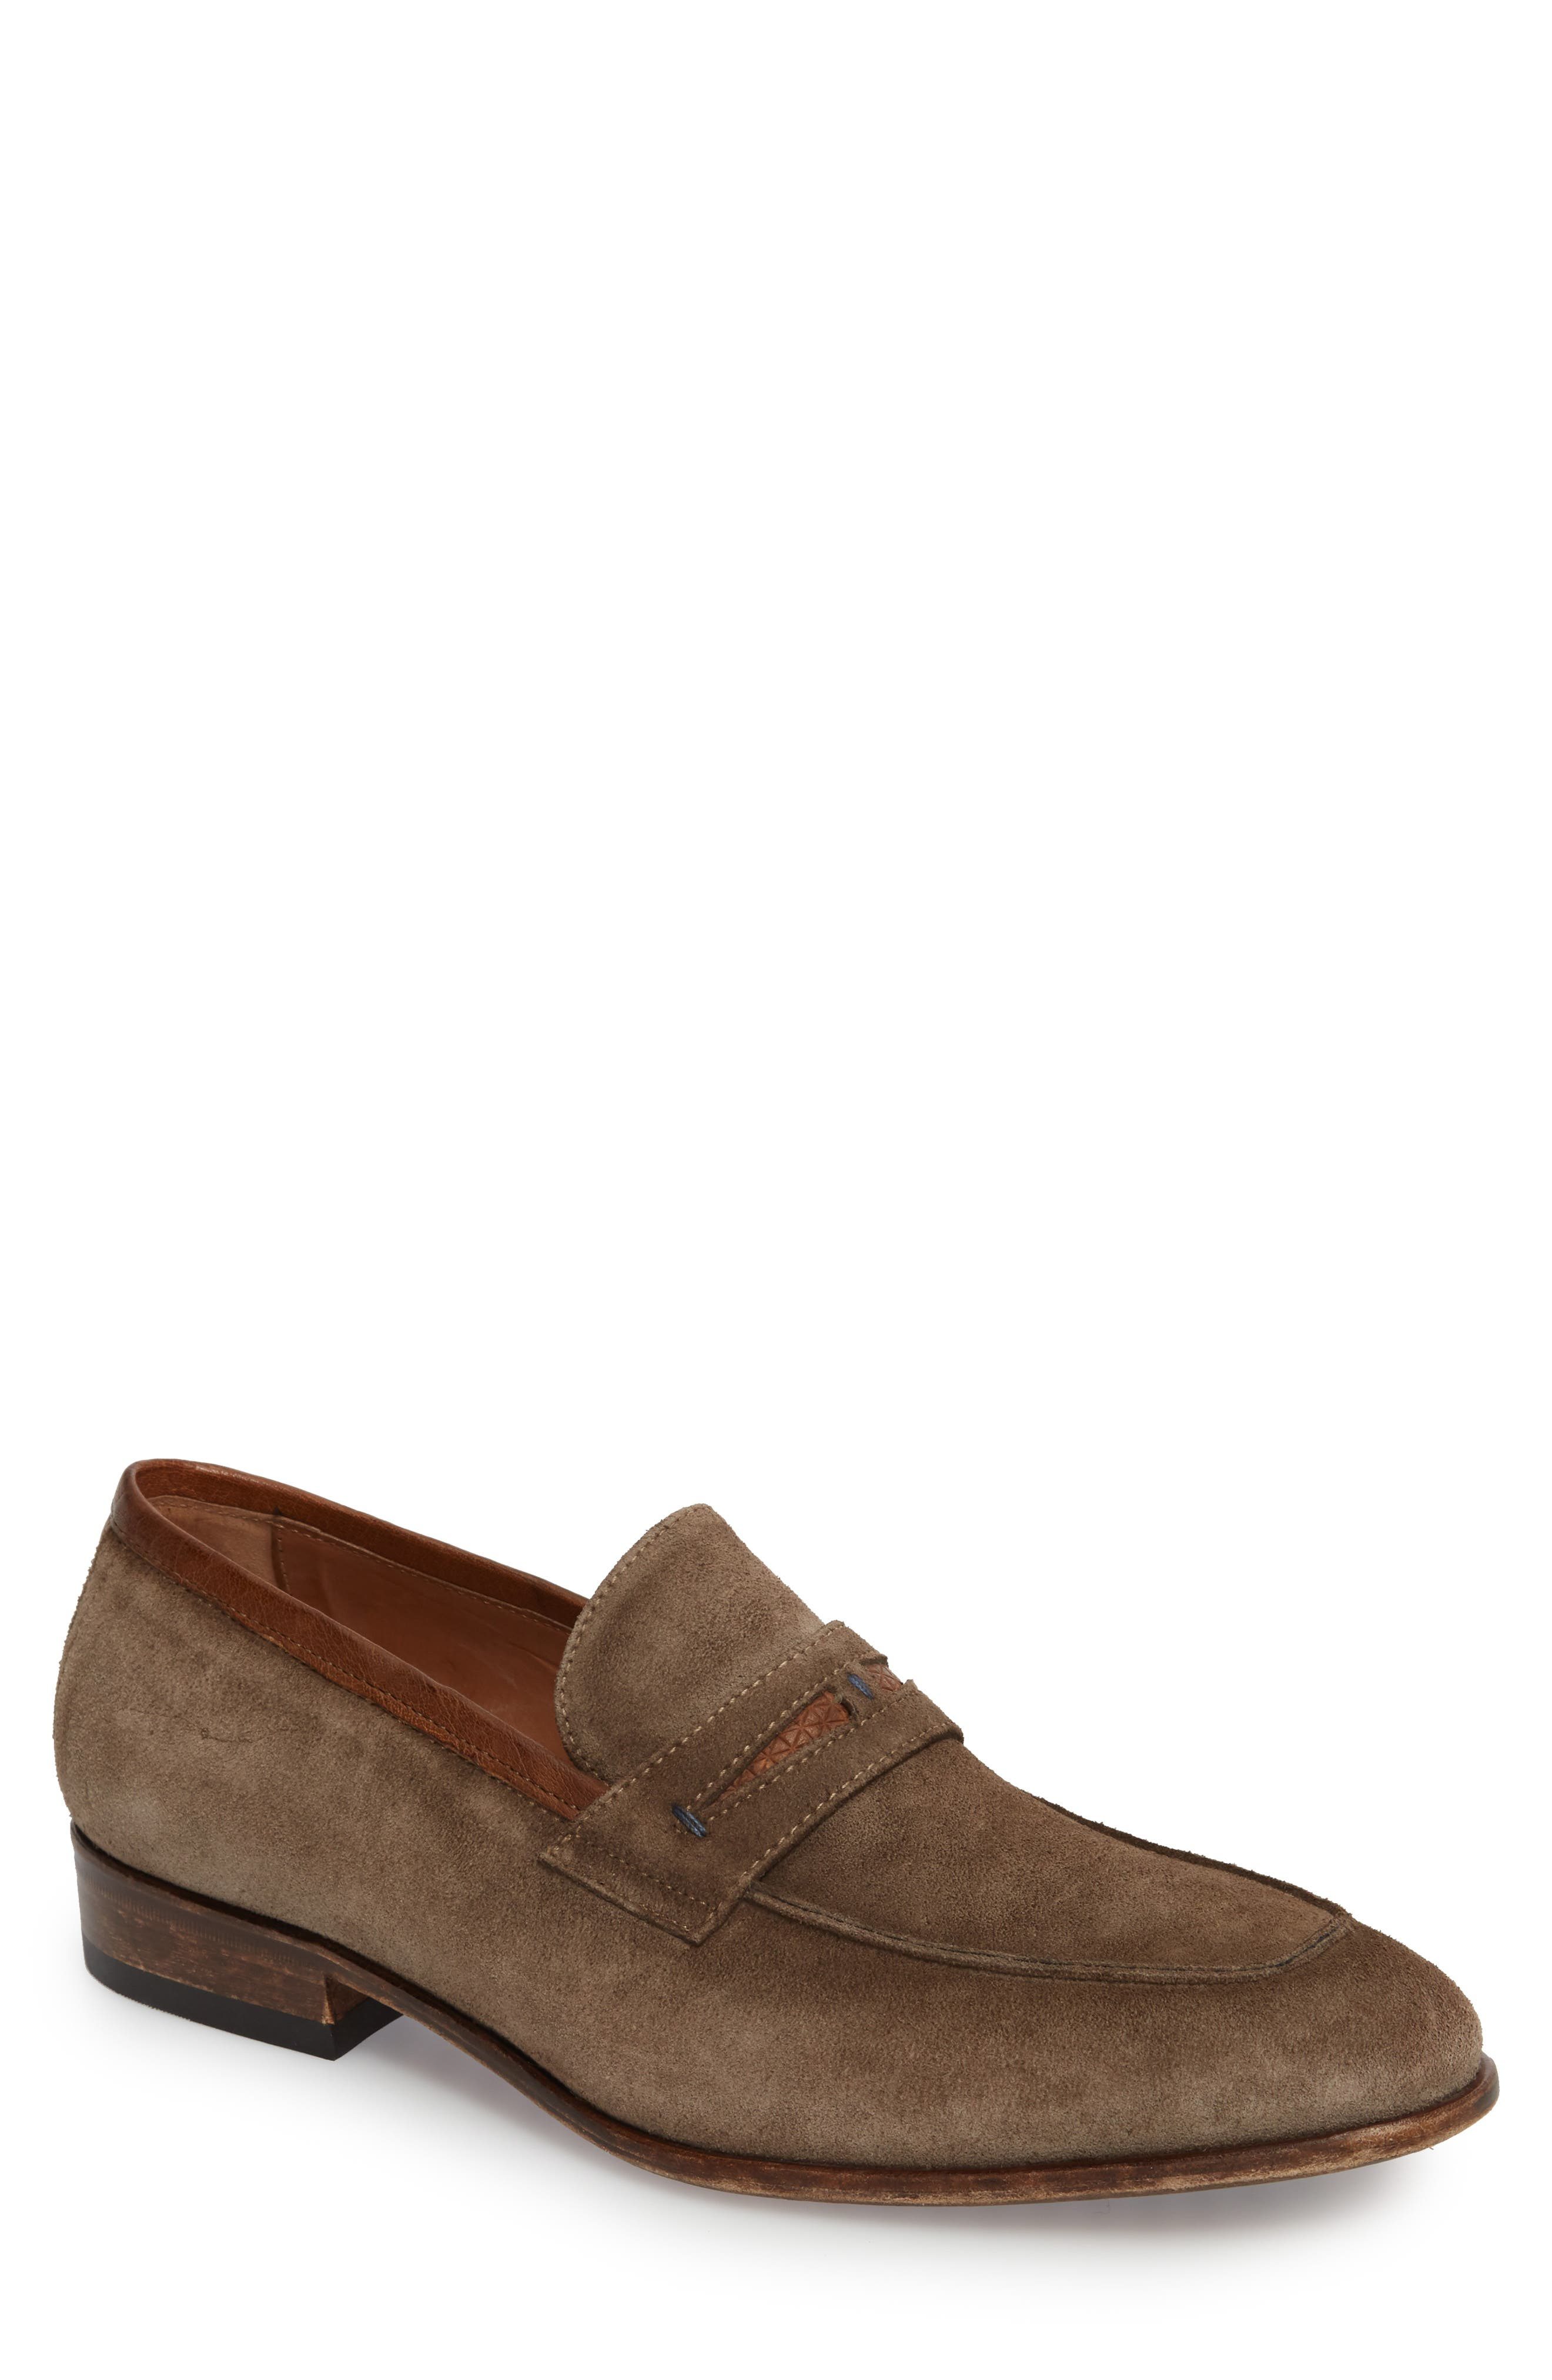 Lex Apron Toe Penny Loafer,                         Main,                         color,